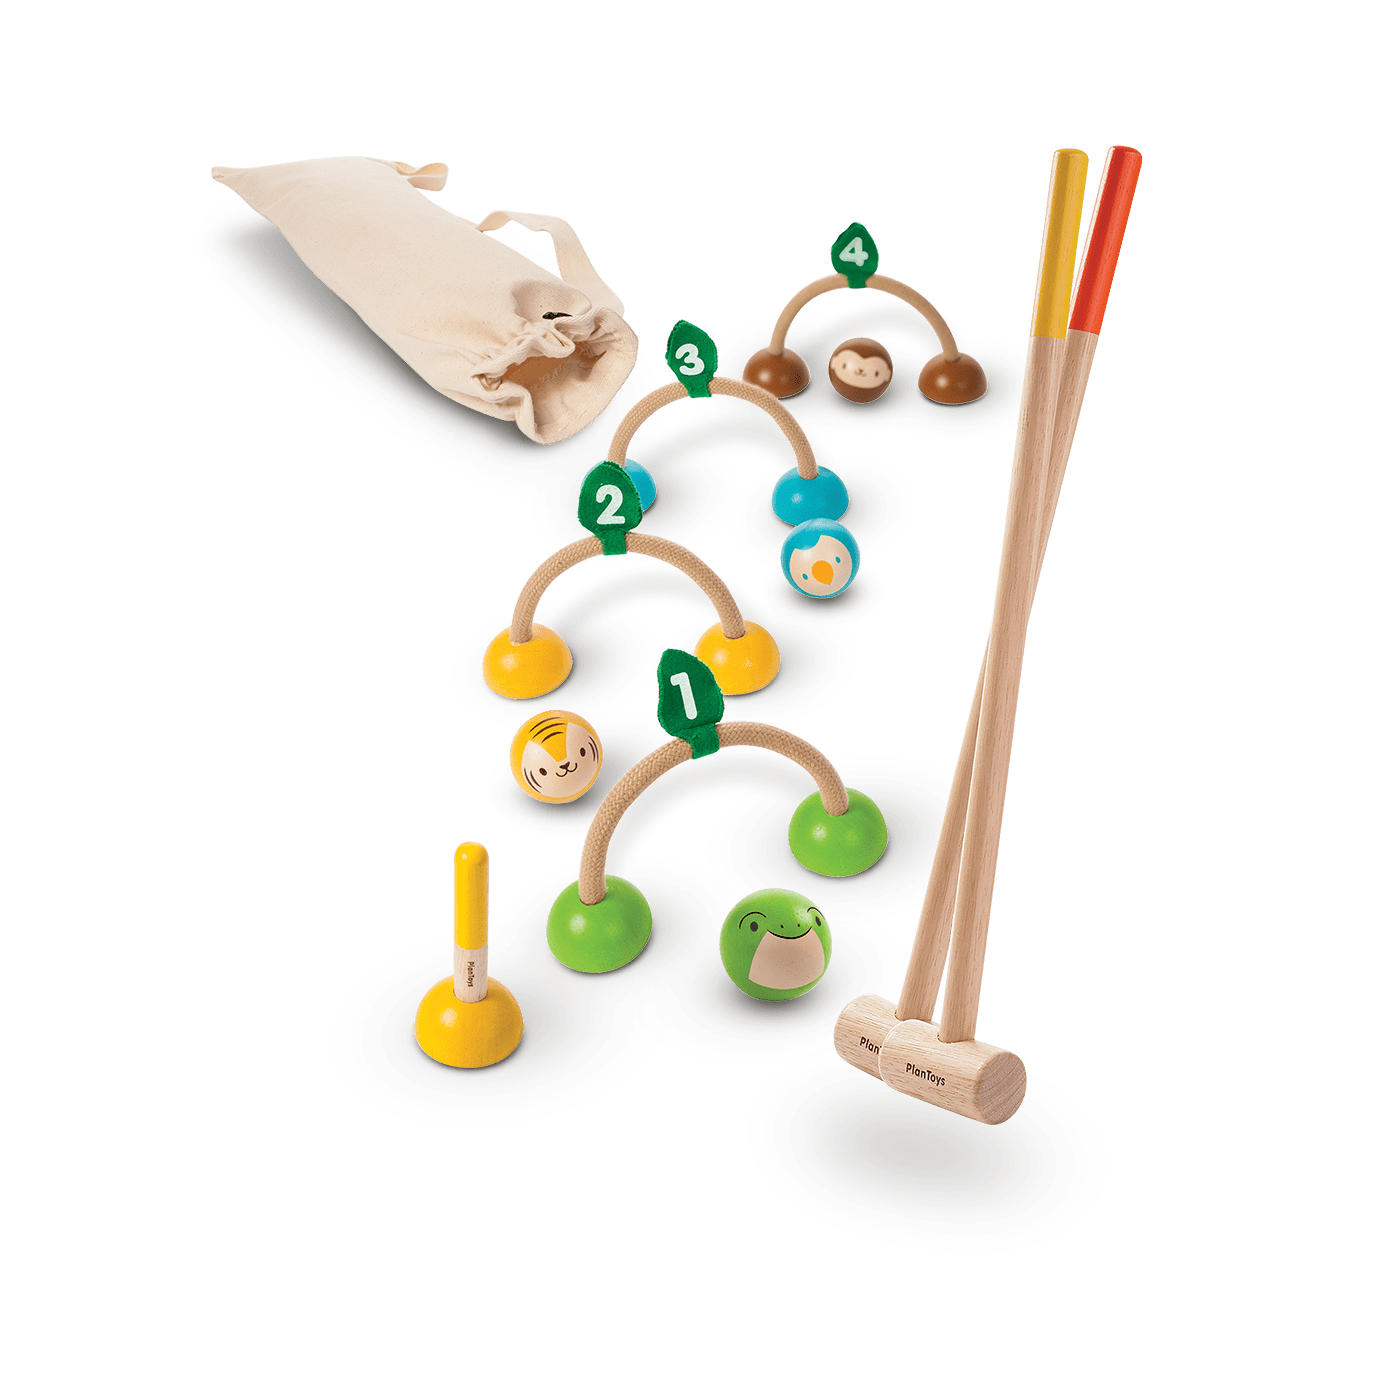 5189_PlanToys_CROQUET_Active_Play_Gross_Motor_Coordination_Concentration_Social_Mathematical_Problem_Solving_3yrs_Wooden_toys_Education_toys_Safety_Toys_Non-toxic_0.png